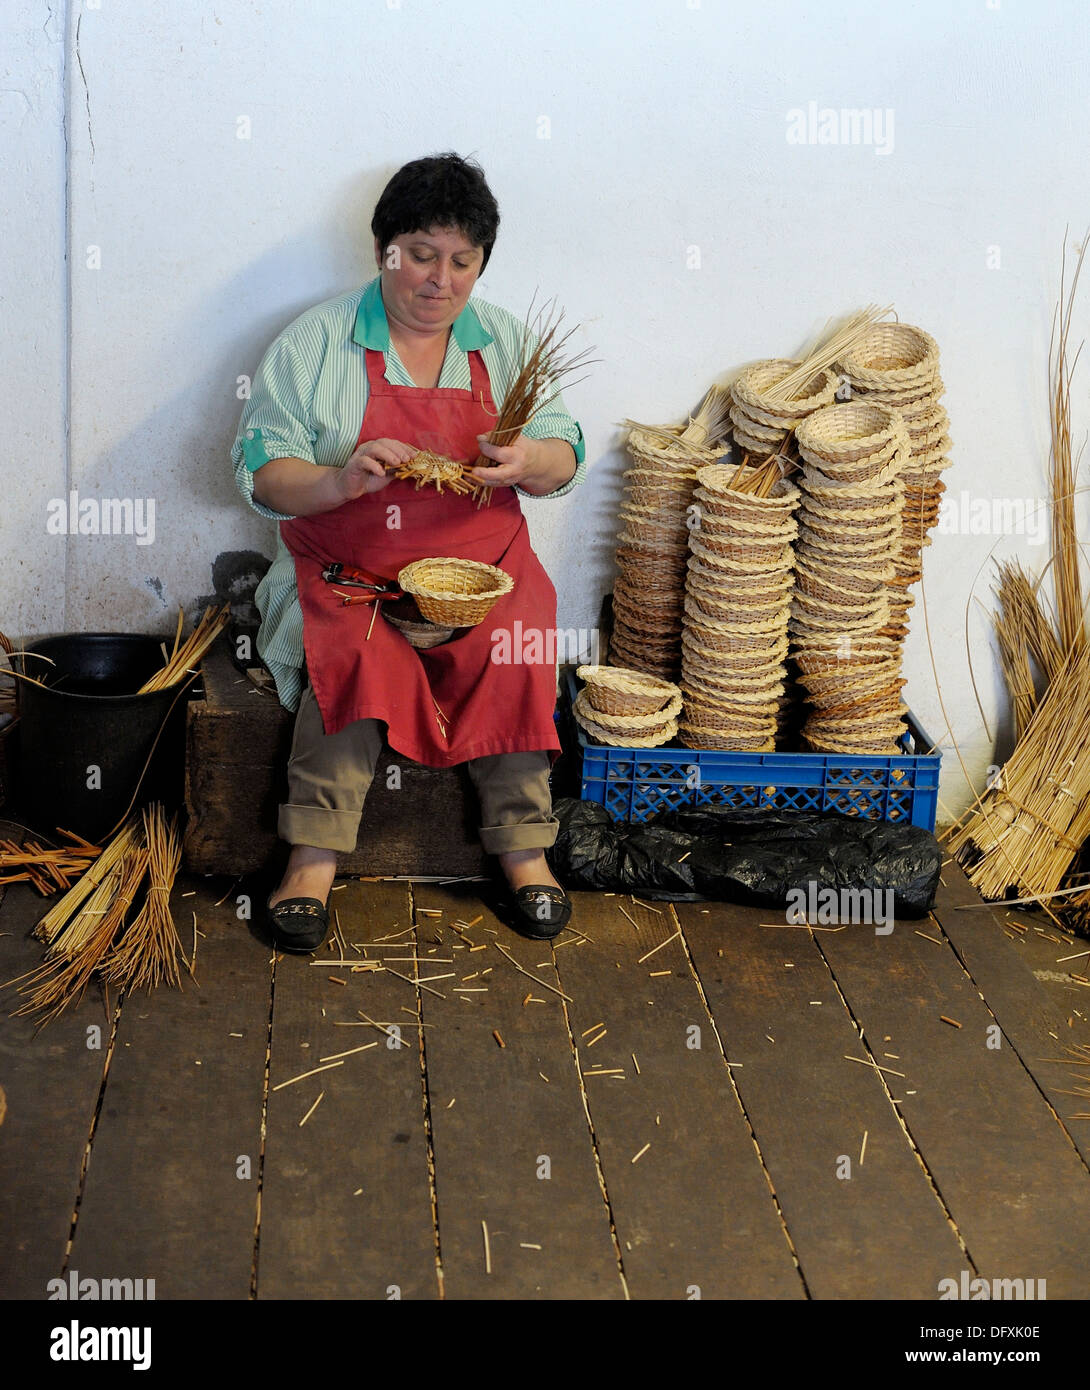 A Female basket weaver at work in the factory shop in Camacha Madeira Portugal - Stock Image